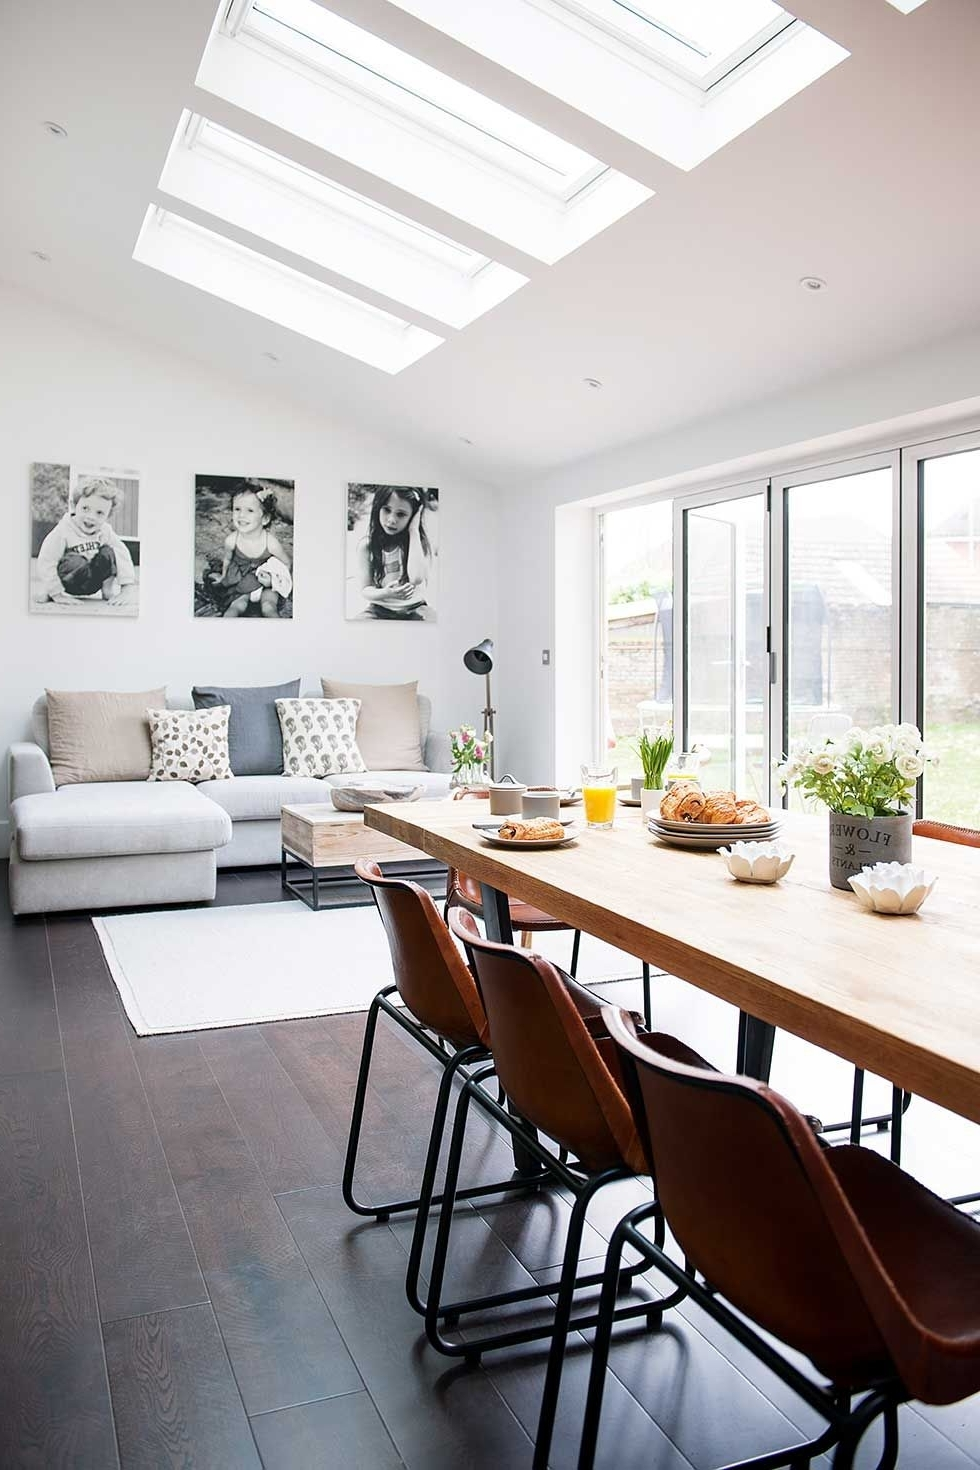 2019 Industrial Kitchen Extension Dining Living Rooflights With Sofa Intended For Sofas For Kitchen Diner (View 1 of 20)